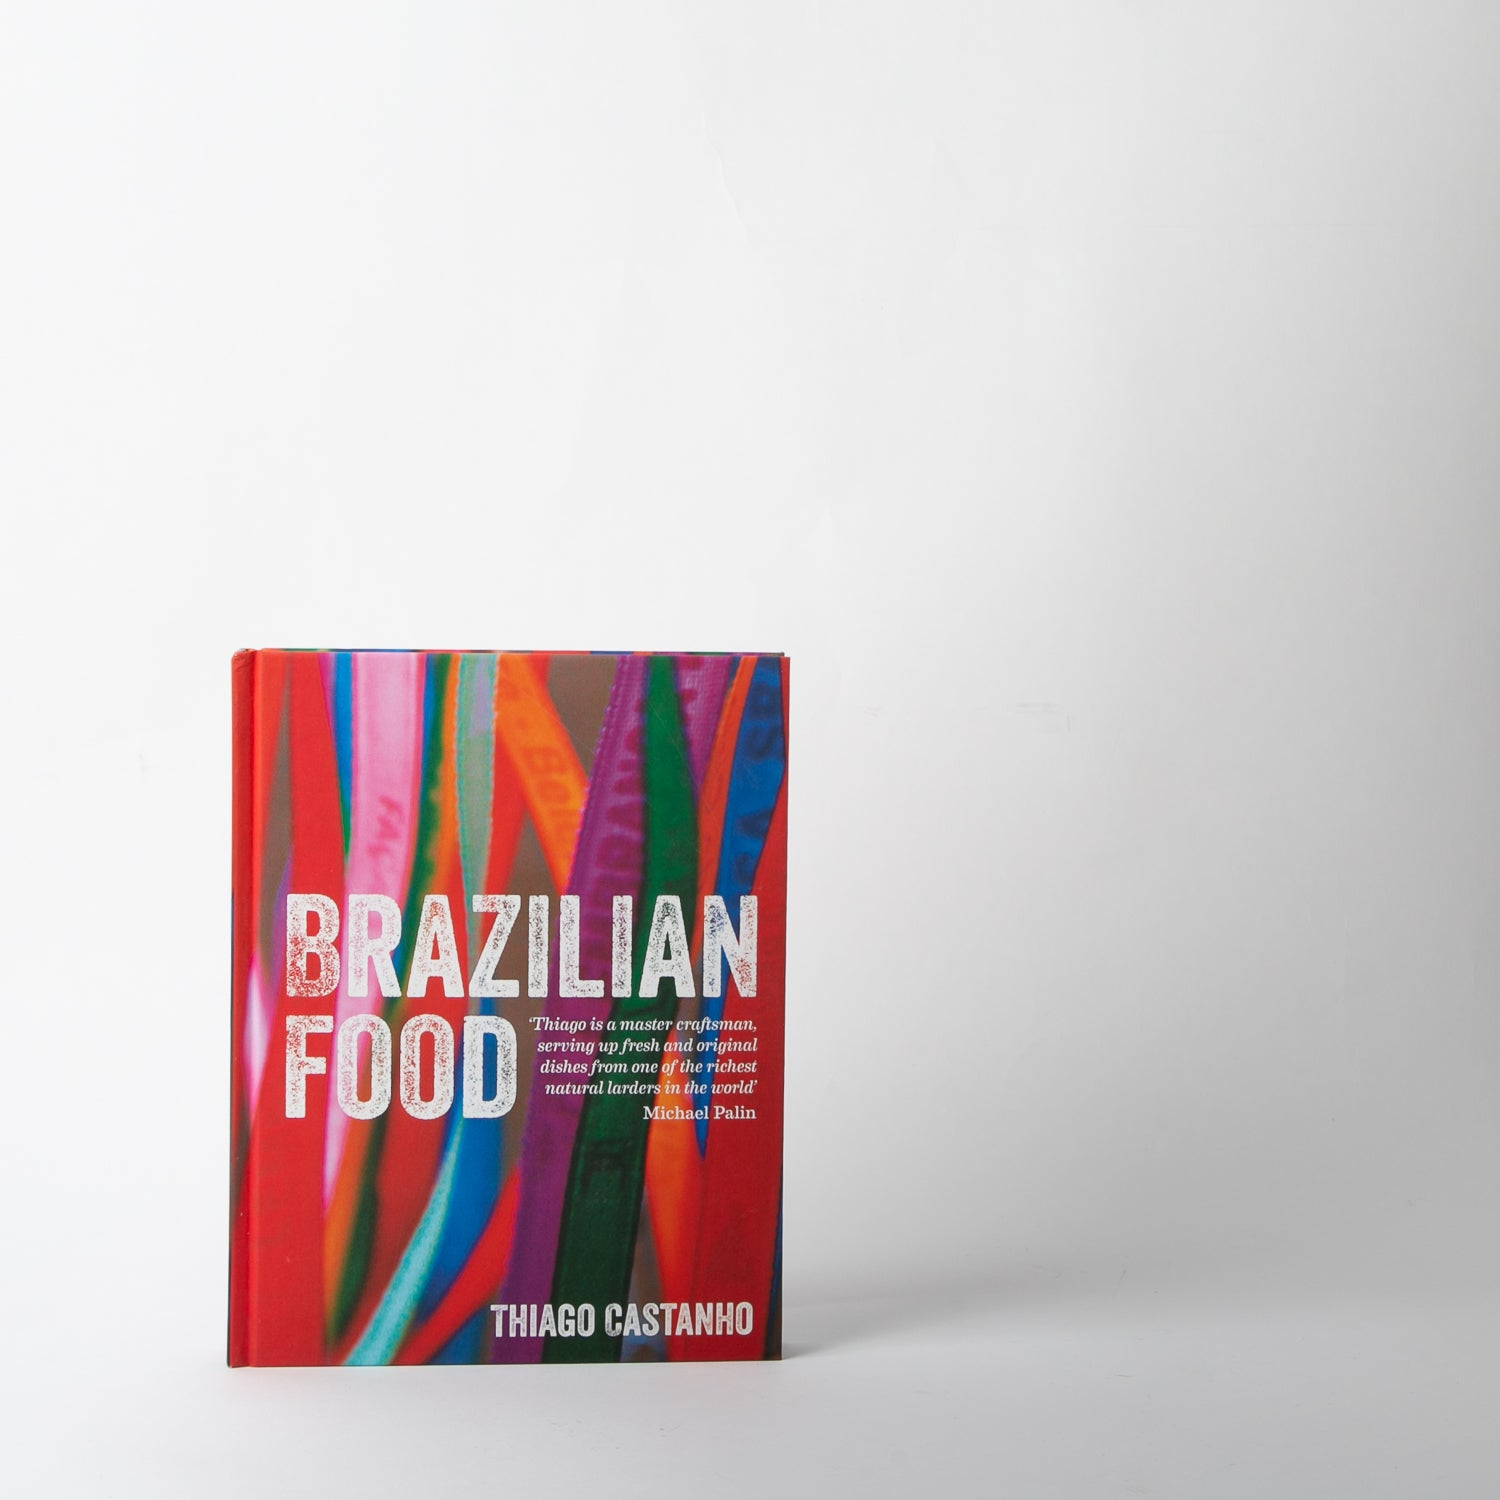 Brazilian Food book by Thiago Castanho at Secret Location